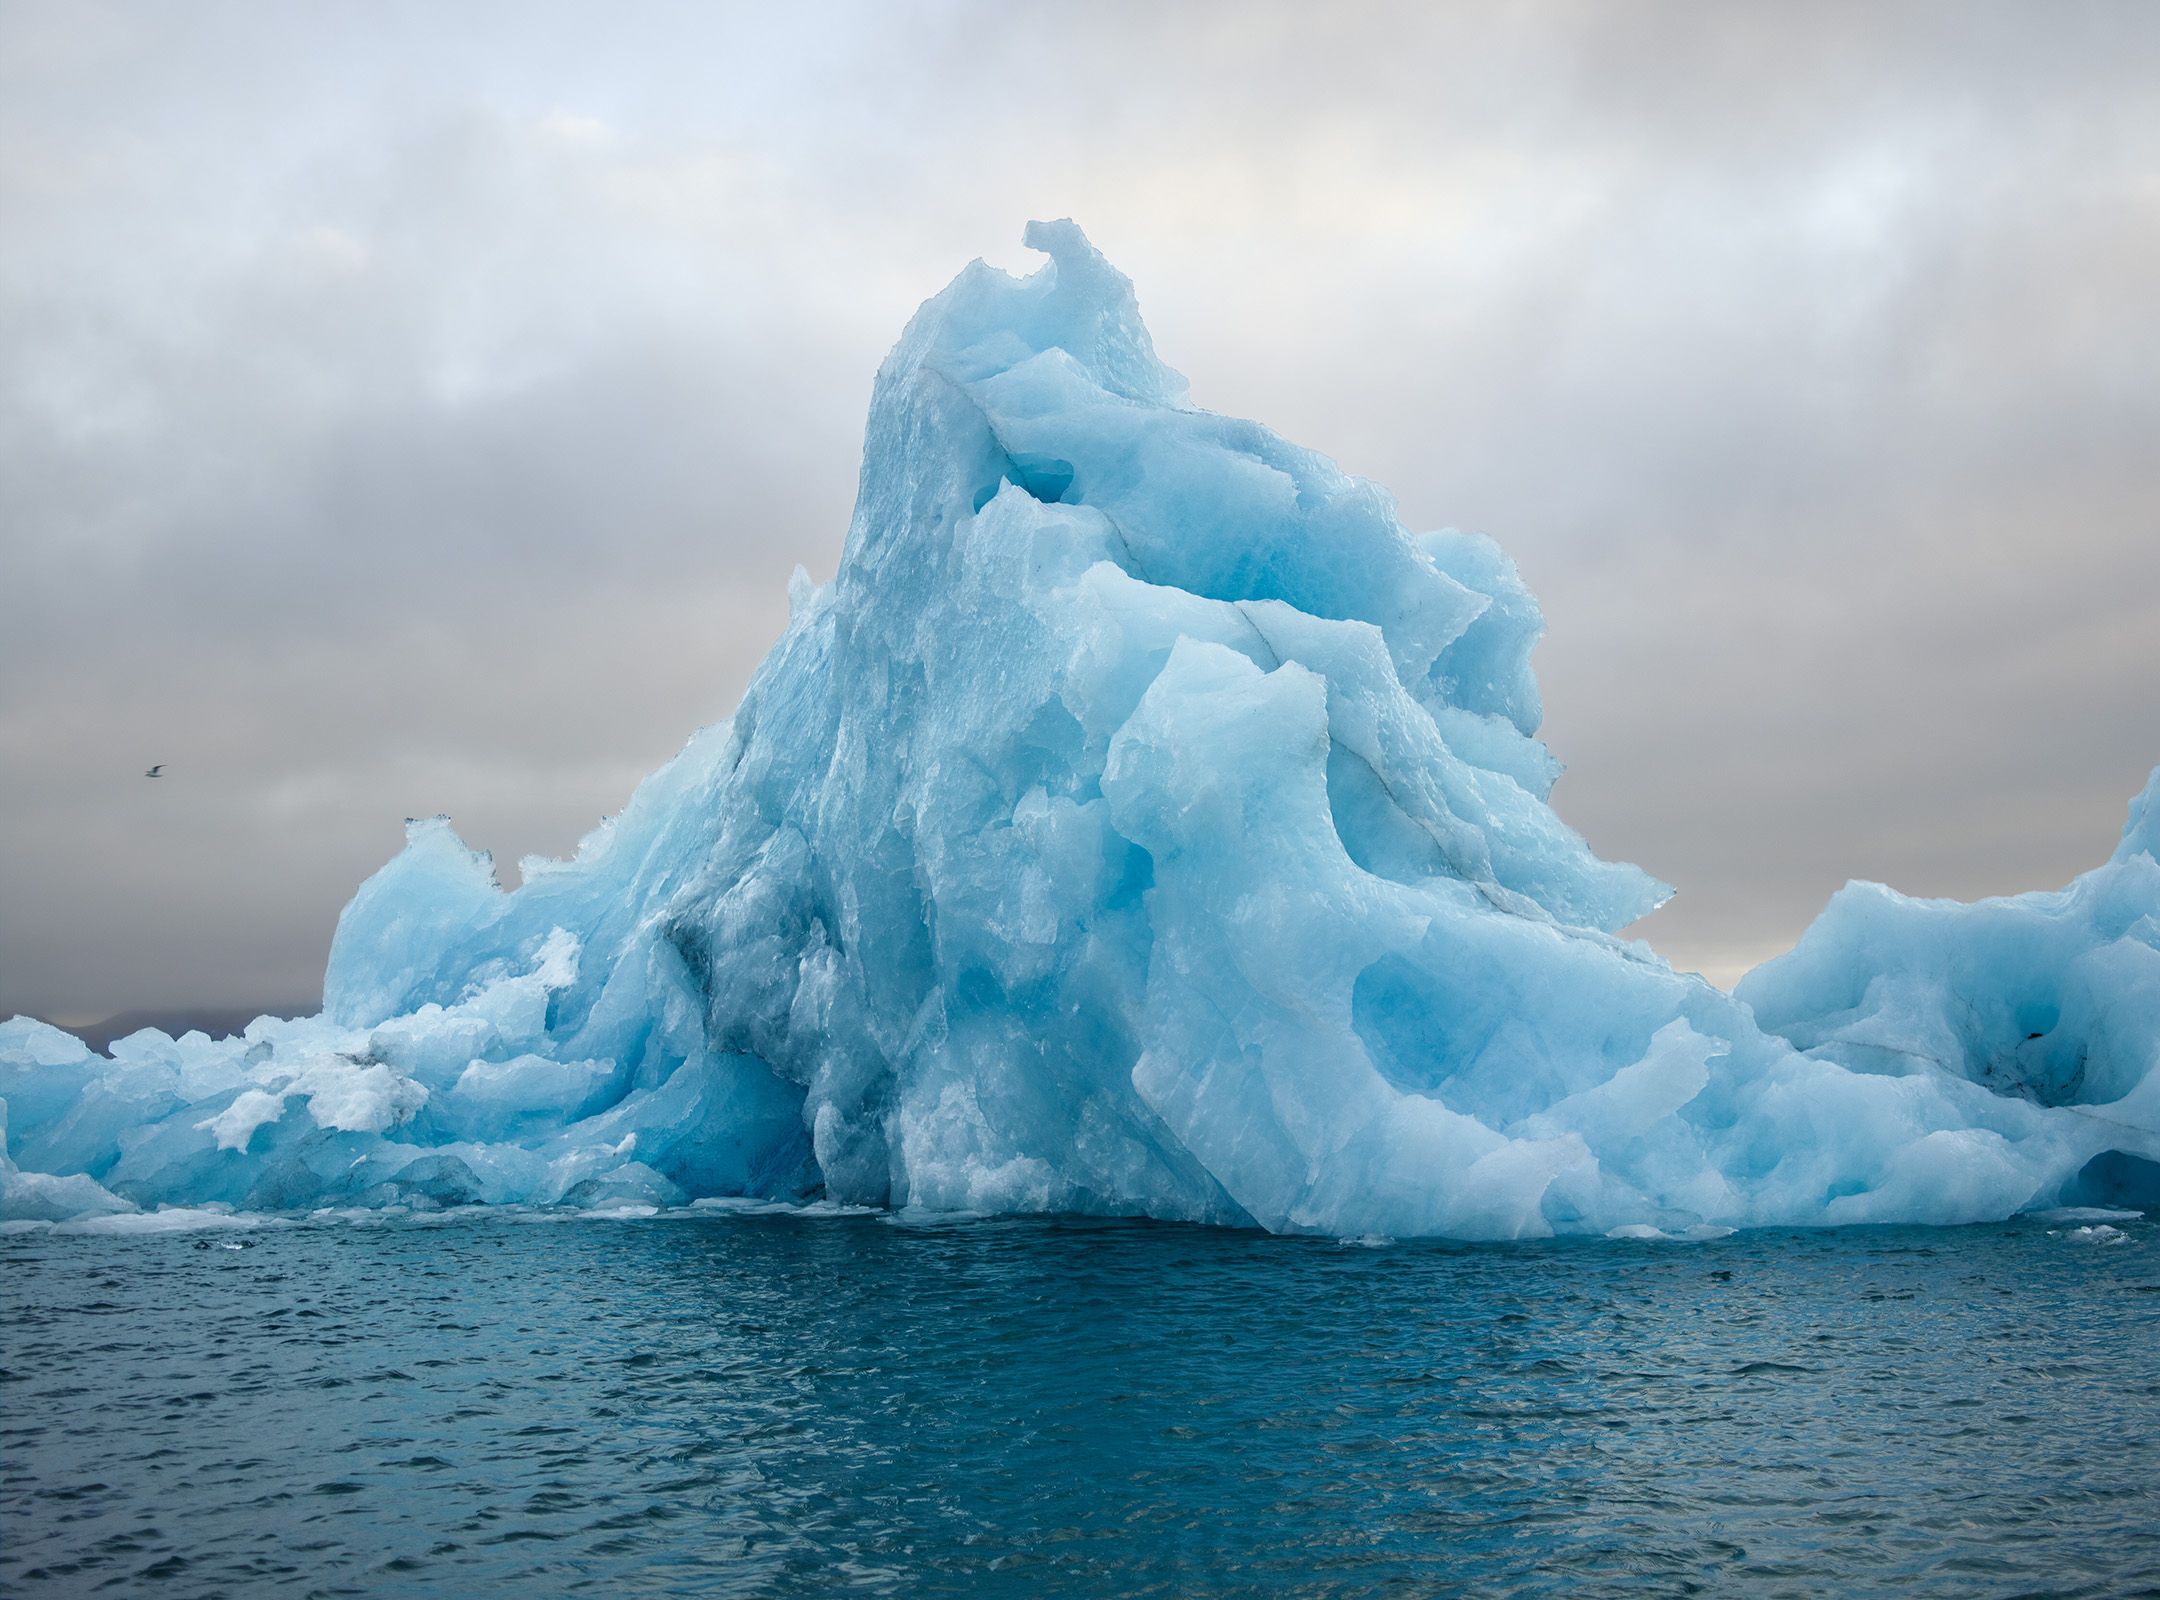 arnold, corey arnold, adventure, arctic, art, climate change, discovery, exhibition, Charles Hartman fine art, hornsund, gallery, glacier, norway, ocean, photographer, photography, project pressure, sea, Svalbard, water, wildlife